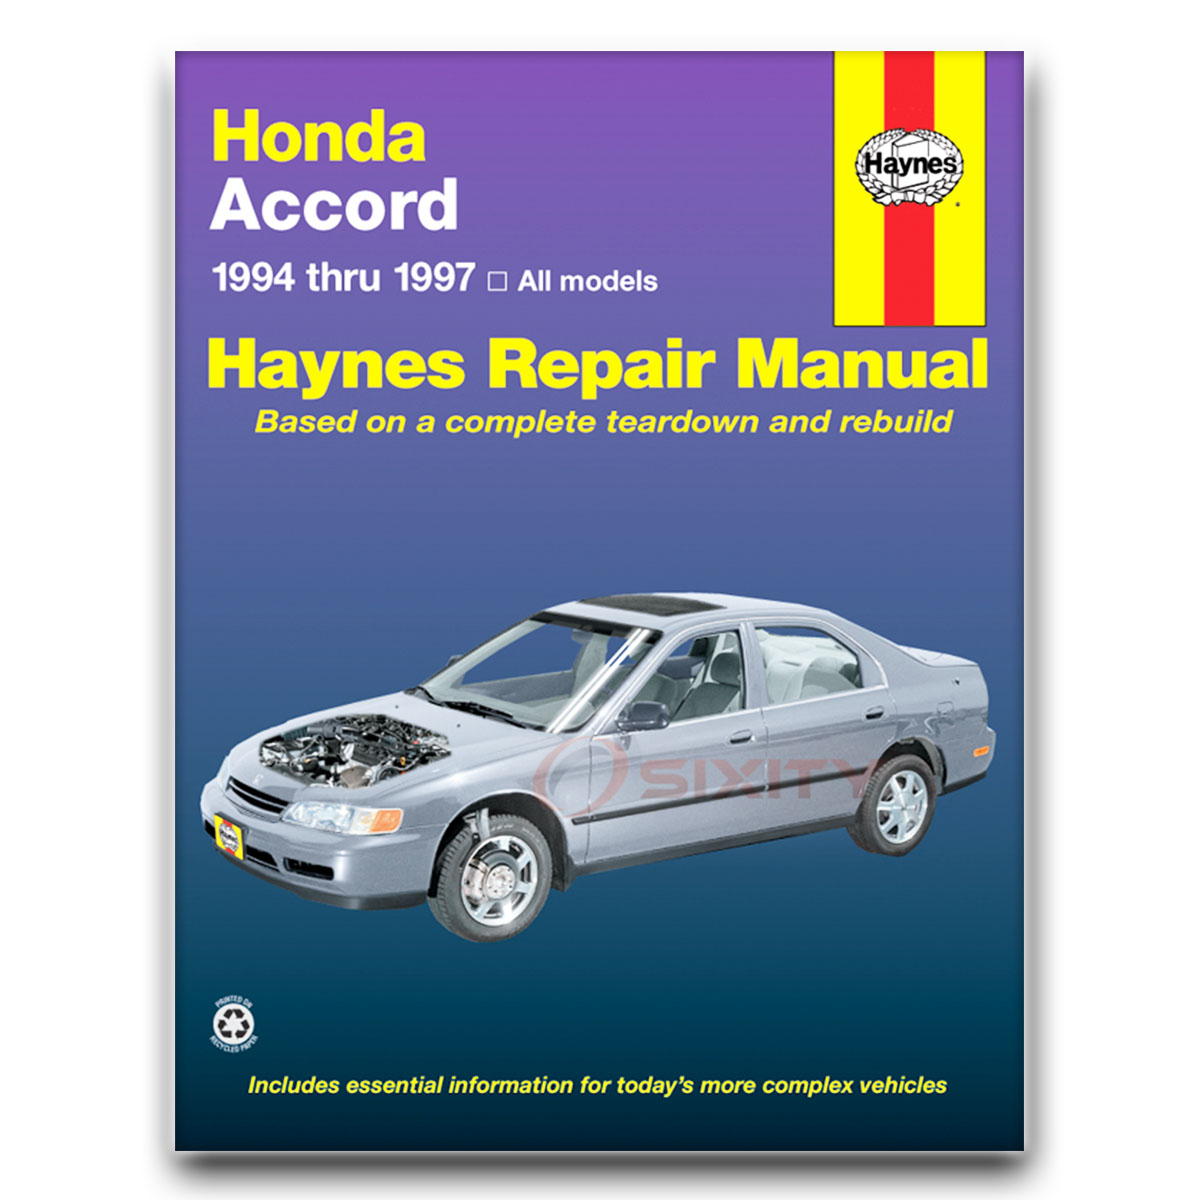 haynes honda accord 94 97 repair manual 42013 shop service garage rh ebay com honda accord 1999 repair manual download pdf Honda Accord Repair Manual PDF